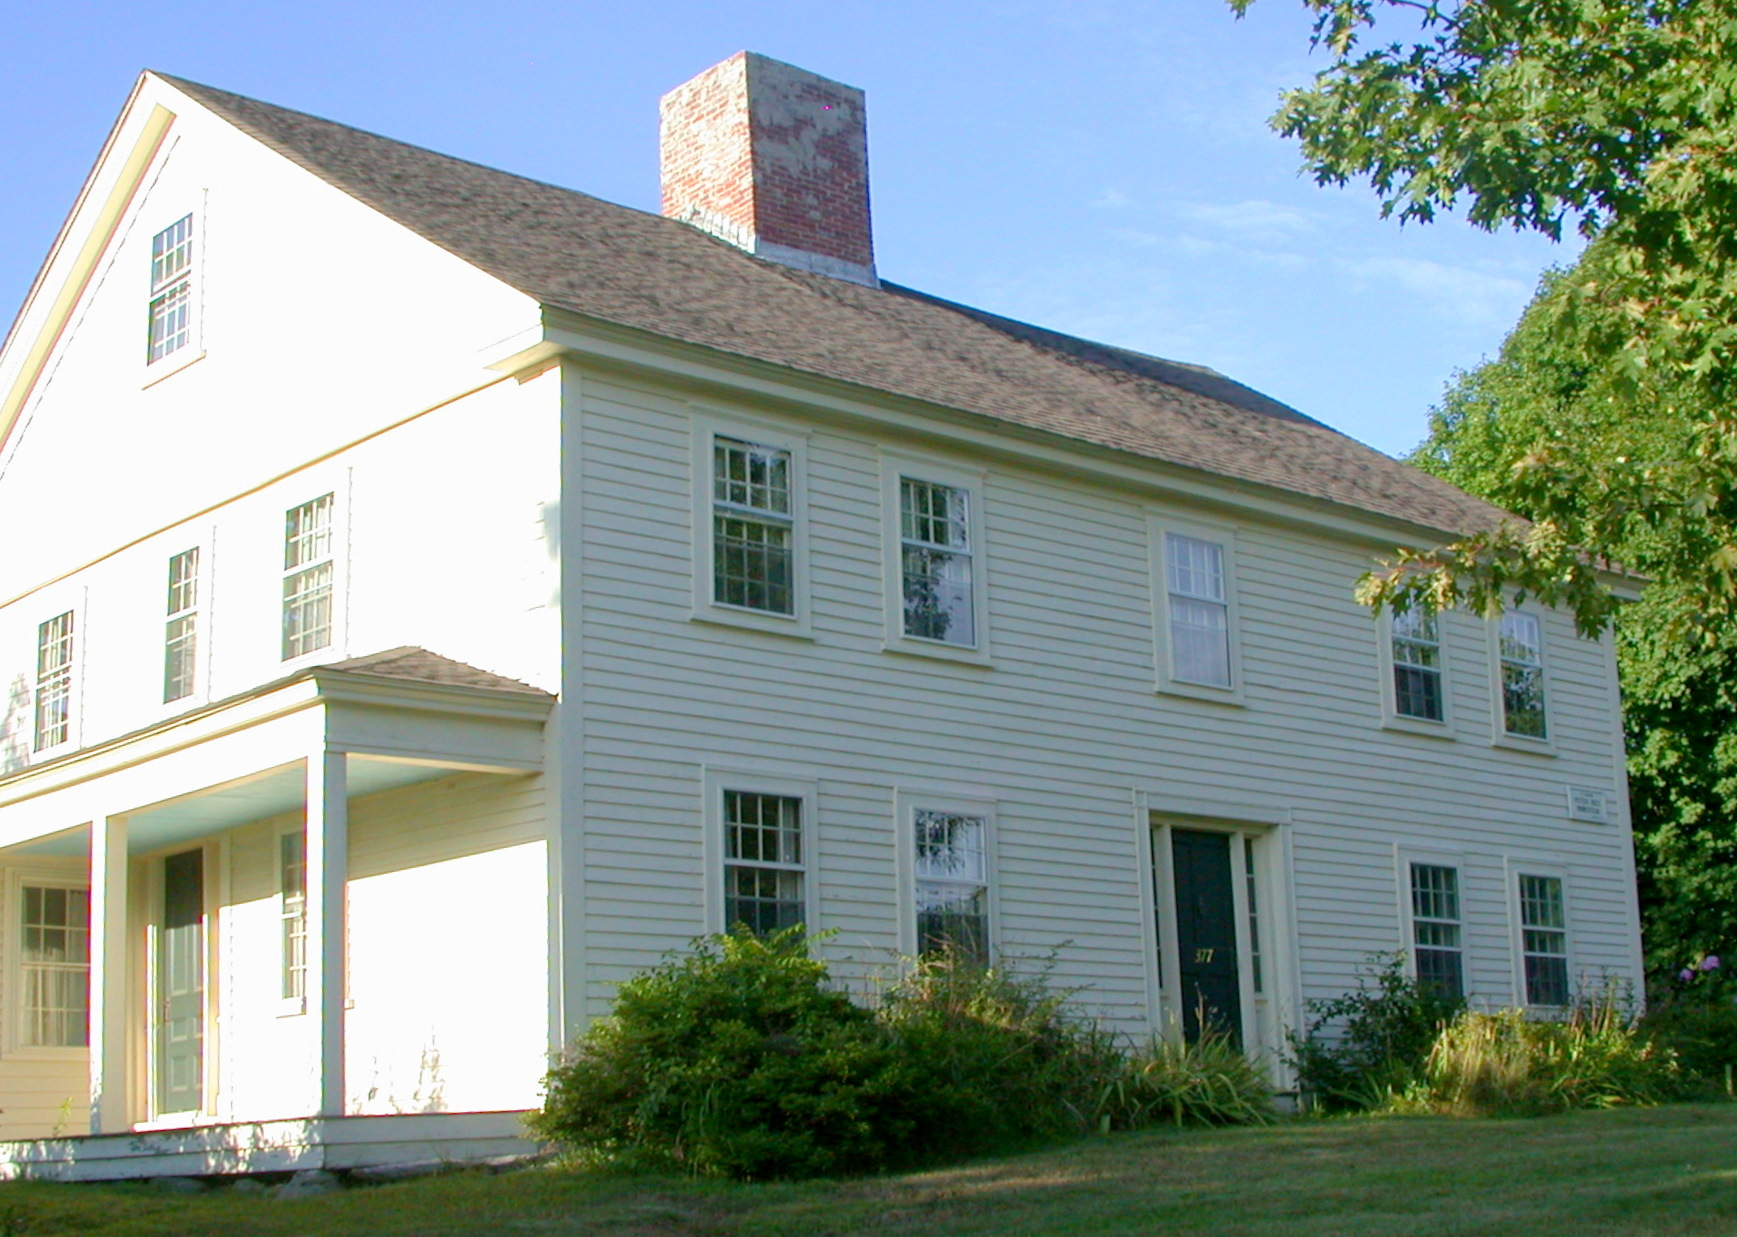 The Peter Rice Homestead (1688)